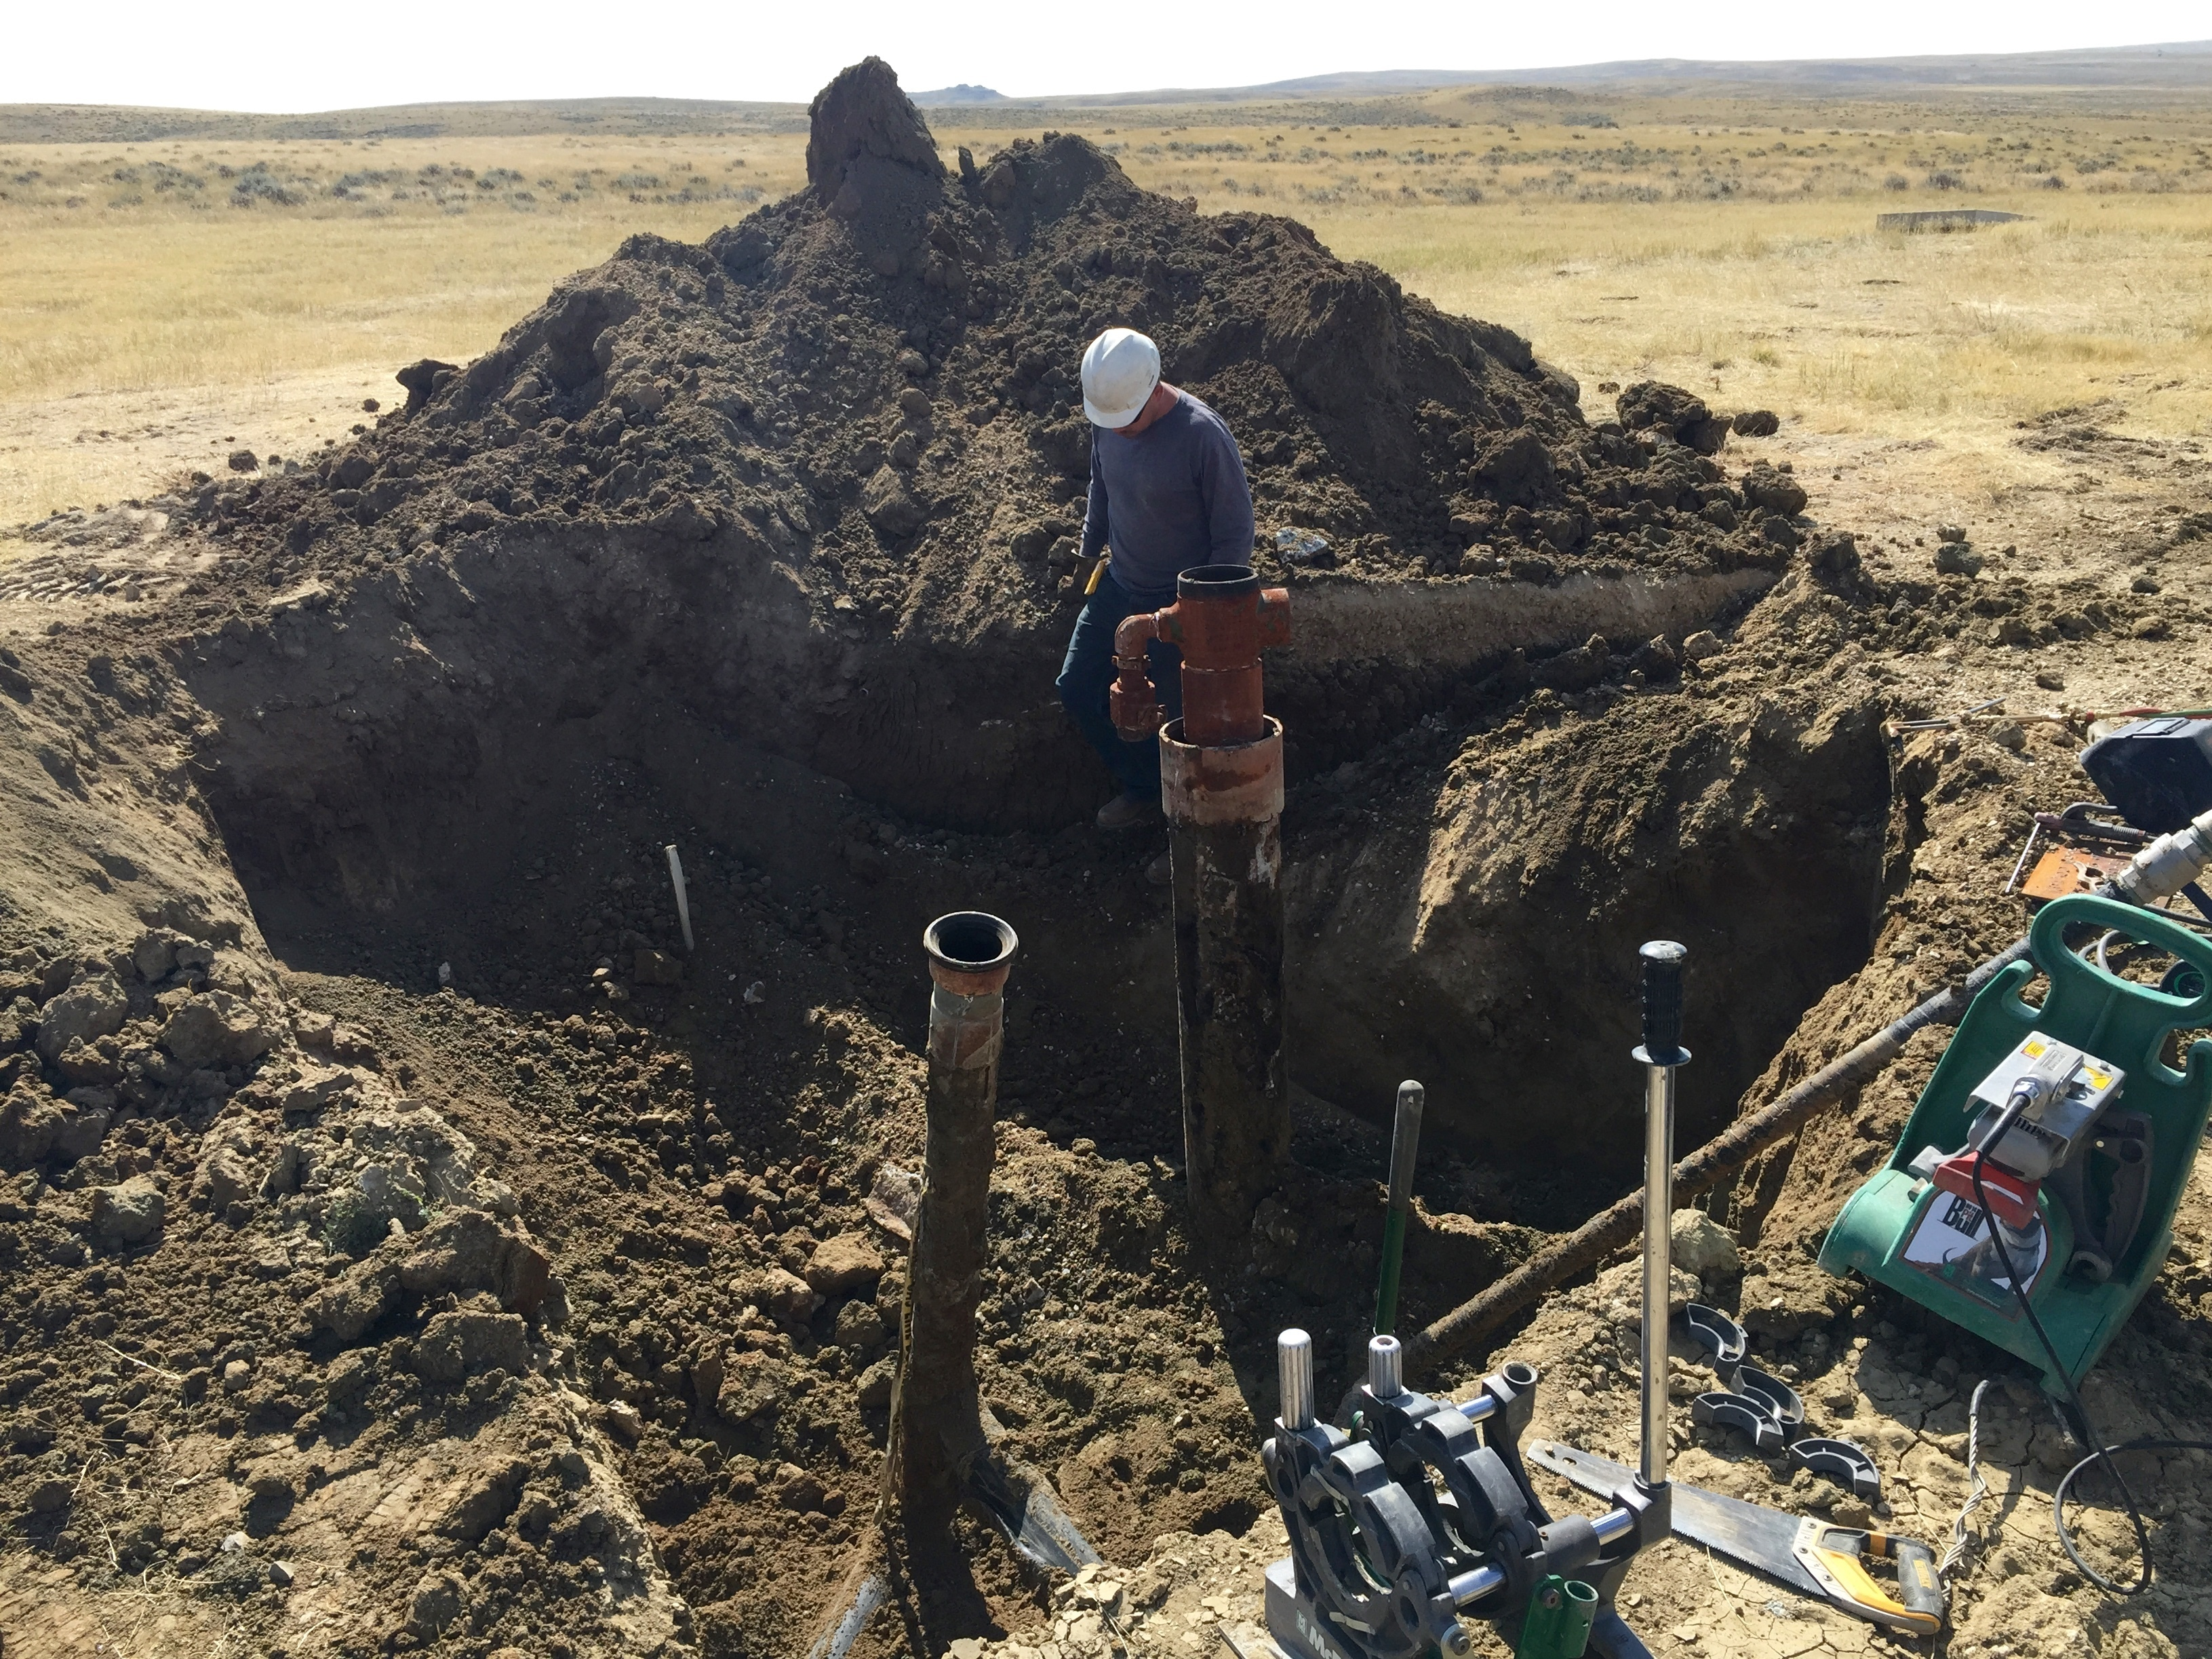 A contractor prepares to cut off the top of a coal bed methane well near Gillette, Wyo., in 2015. It's one of thousands of abandoned, plugged wells sprinkled throughout Wyoming and Colorado. (Photo by Stephanie Joyce/Wyoming Public Media)